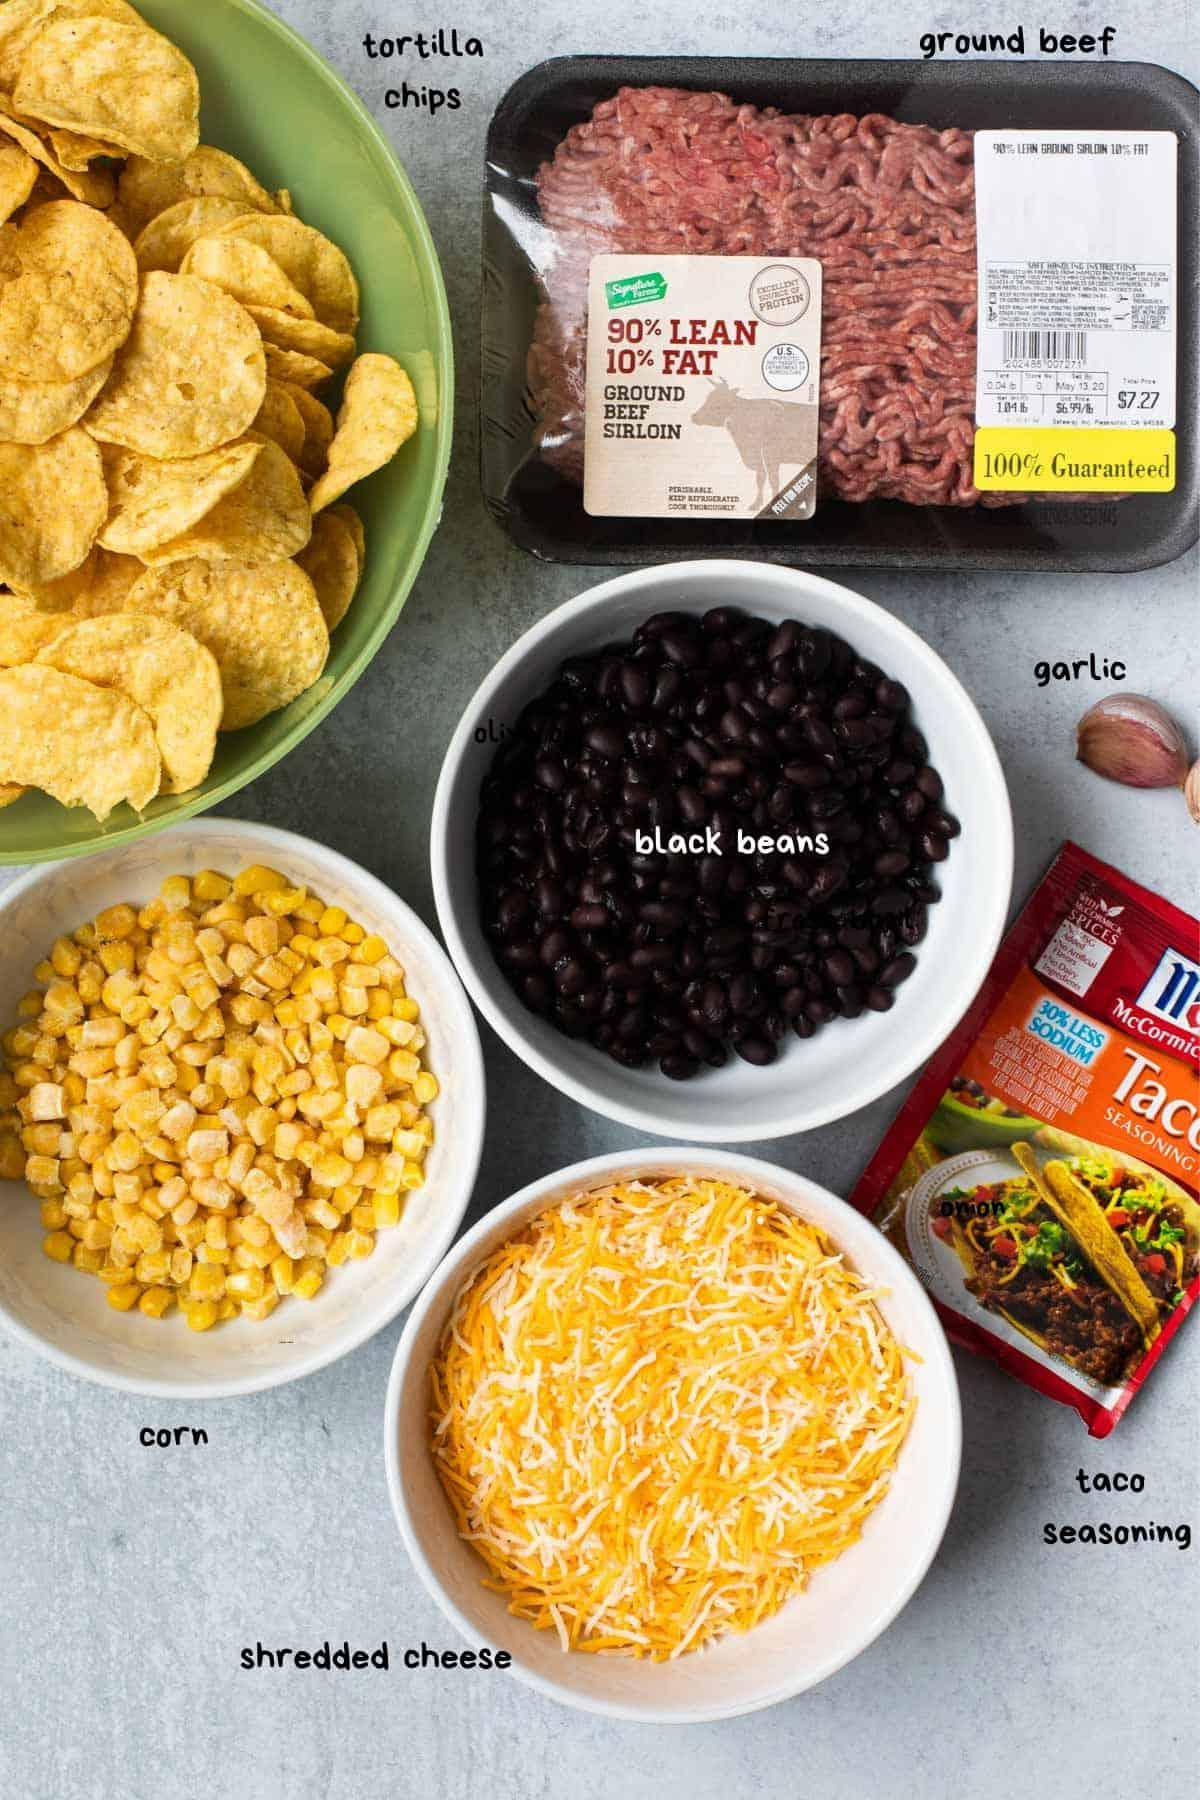 overhead photo showing chips, corn, shredded cheese, black beans, taco seasoning, and uncooked ground beef